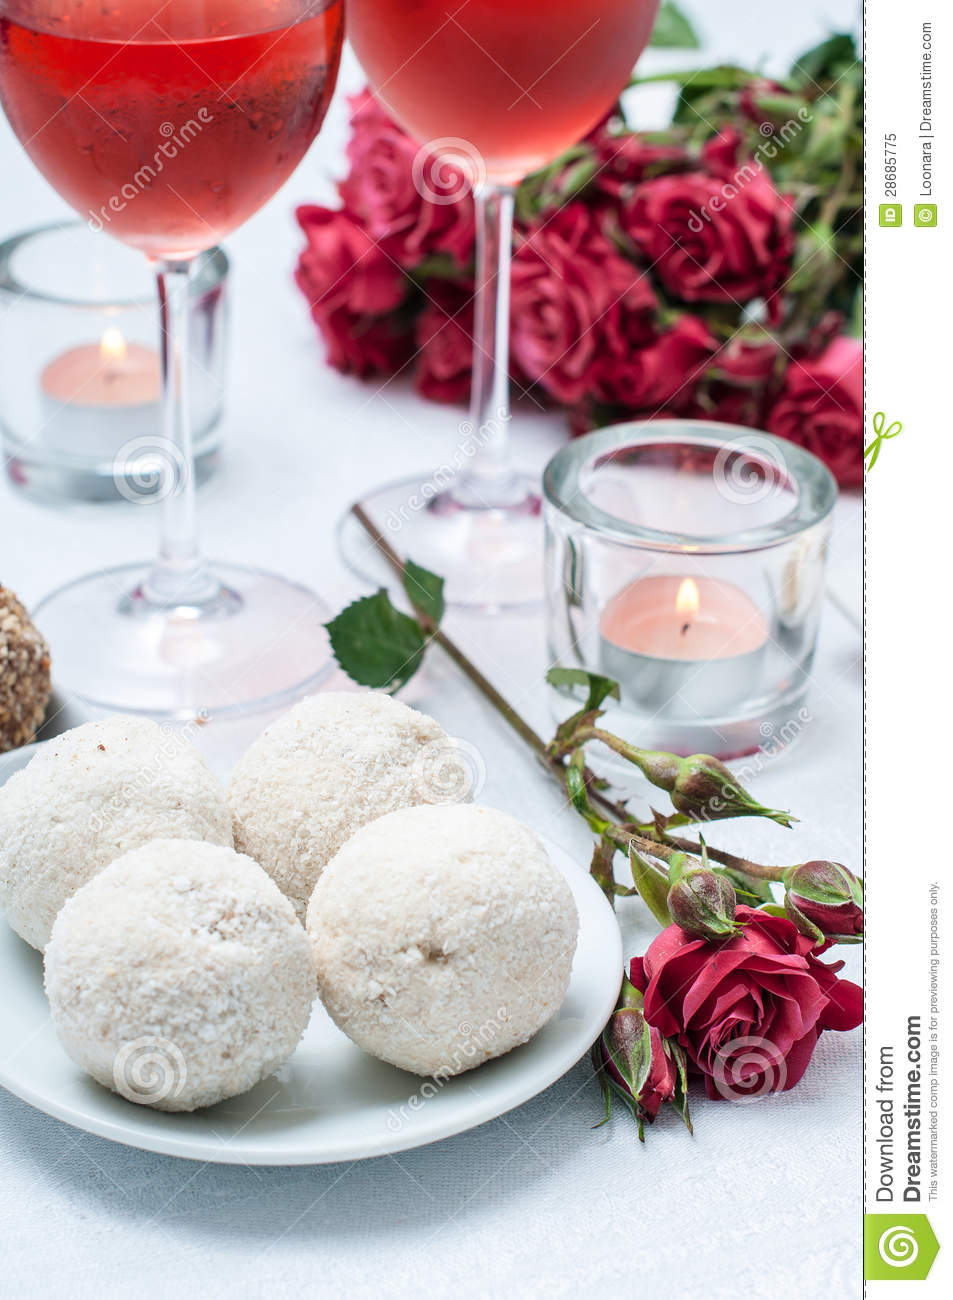 11 Small Coconut Cakes With Flowers Photo Wine and Flowers